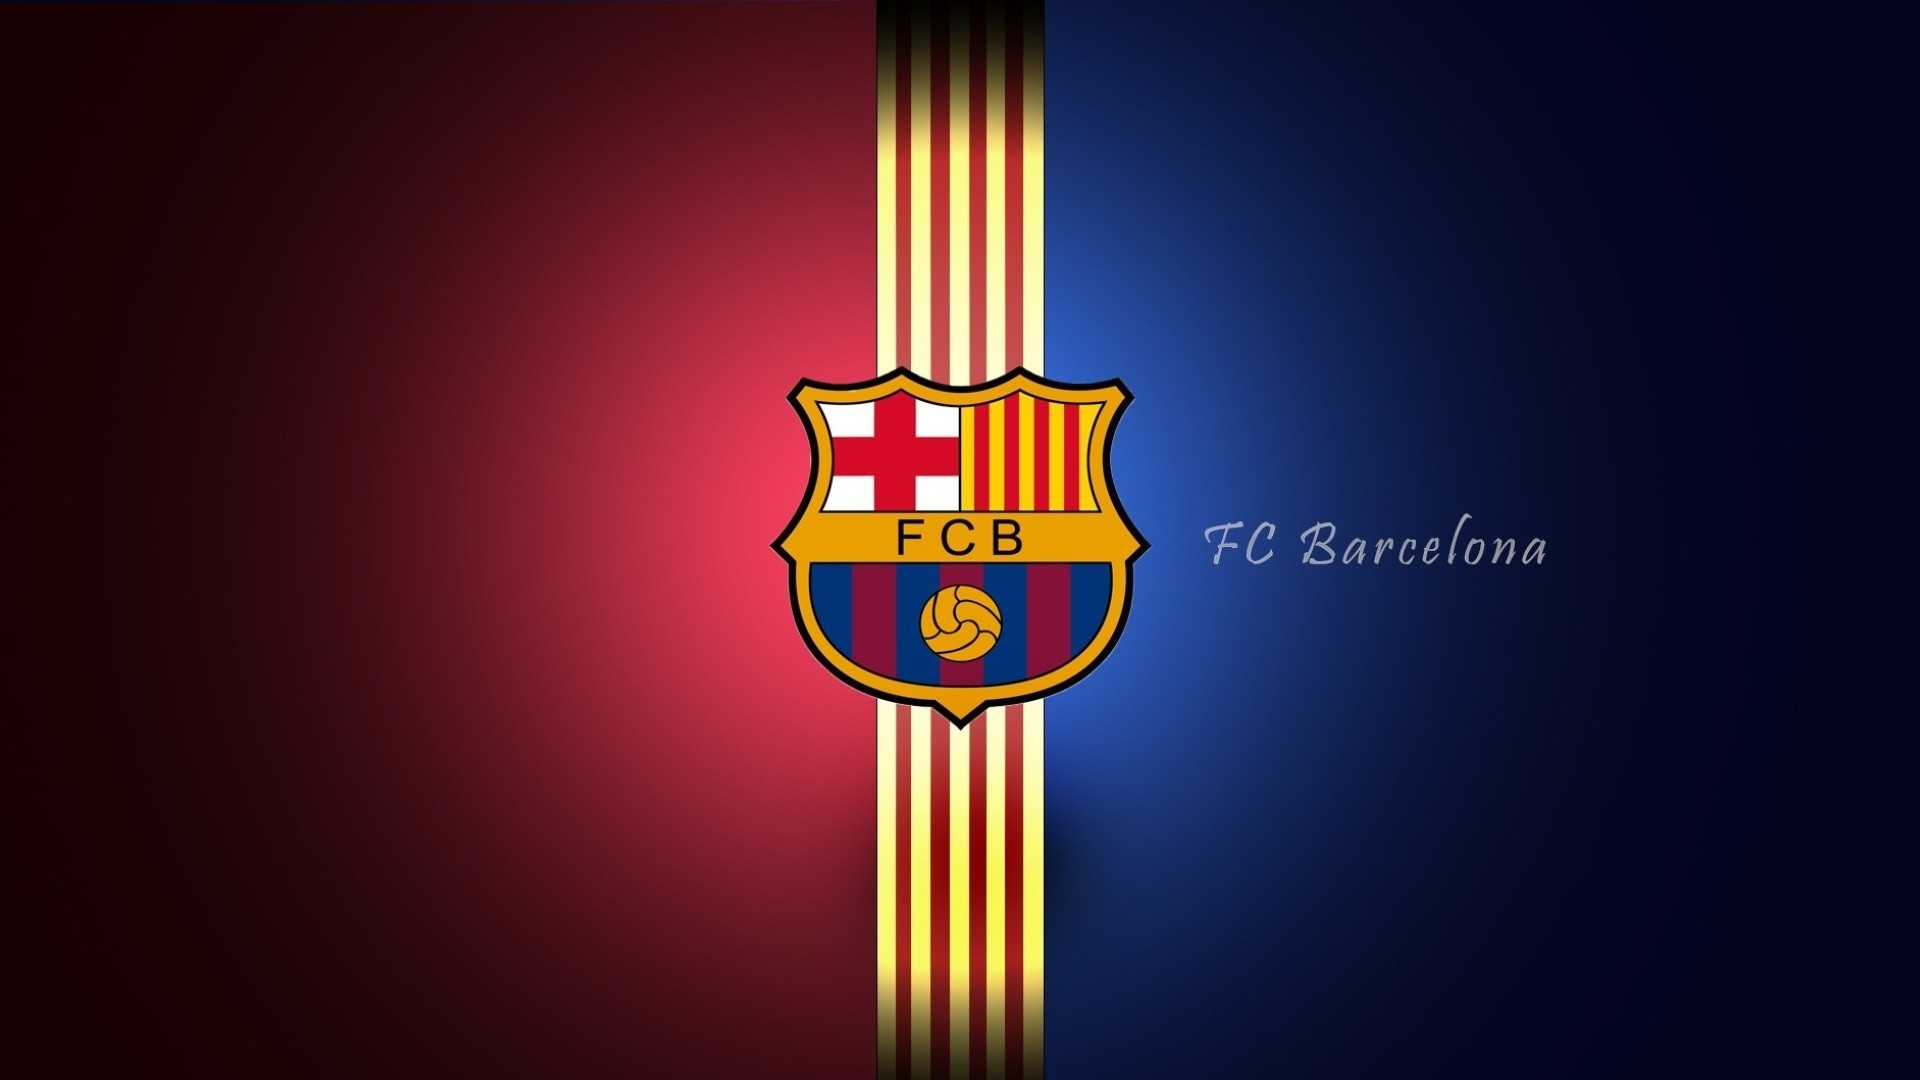 fc barcelona, hd sports, 4k wallpapers, images, backgrounds, photos